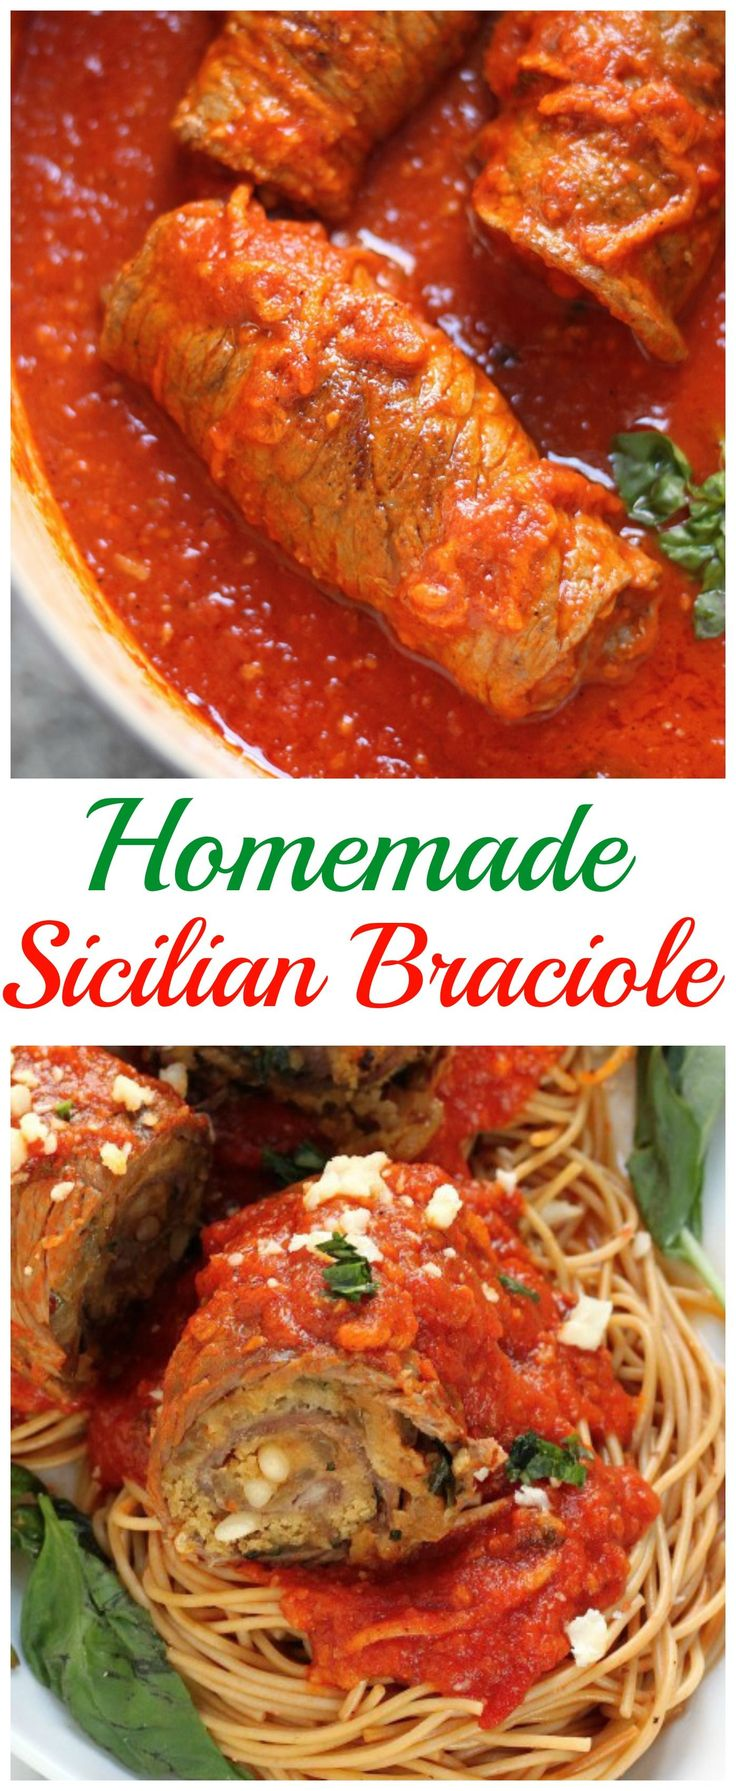 Homemade Sicilian Braciole:brown the meat & put in  crock pot